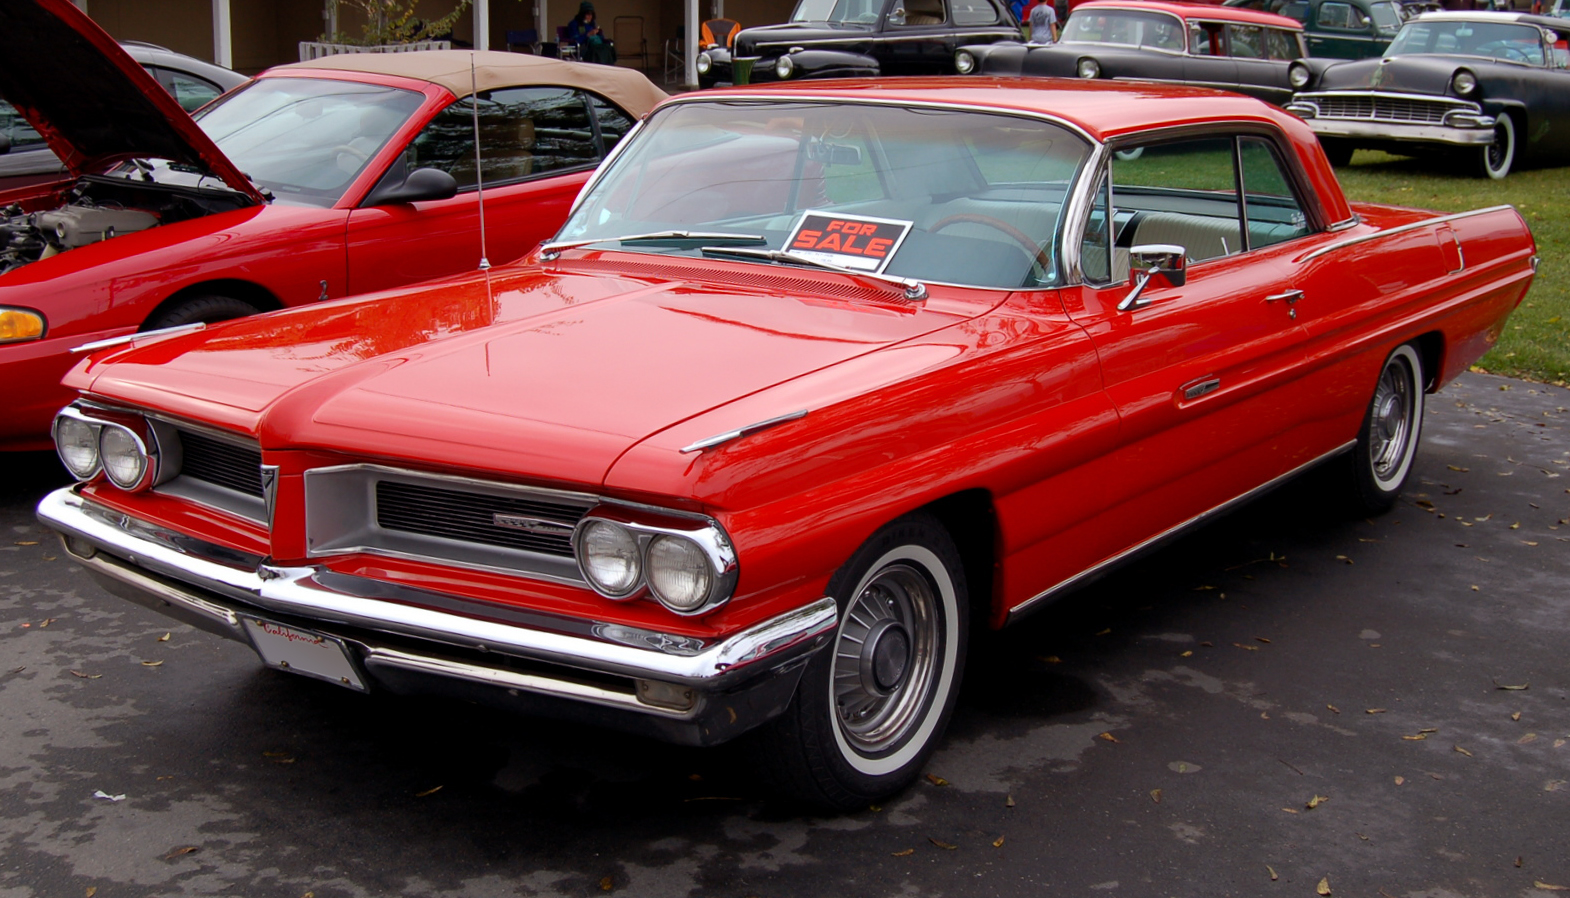 hight resolution of file 1962 pontiac grand prix in red jpg